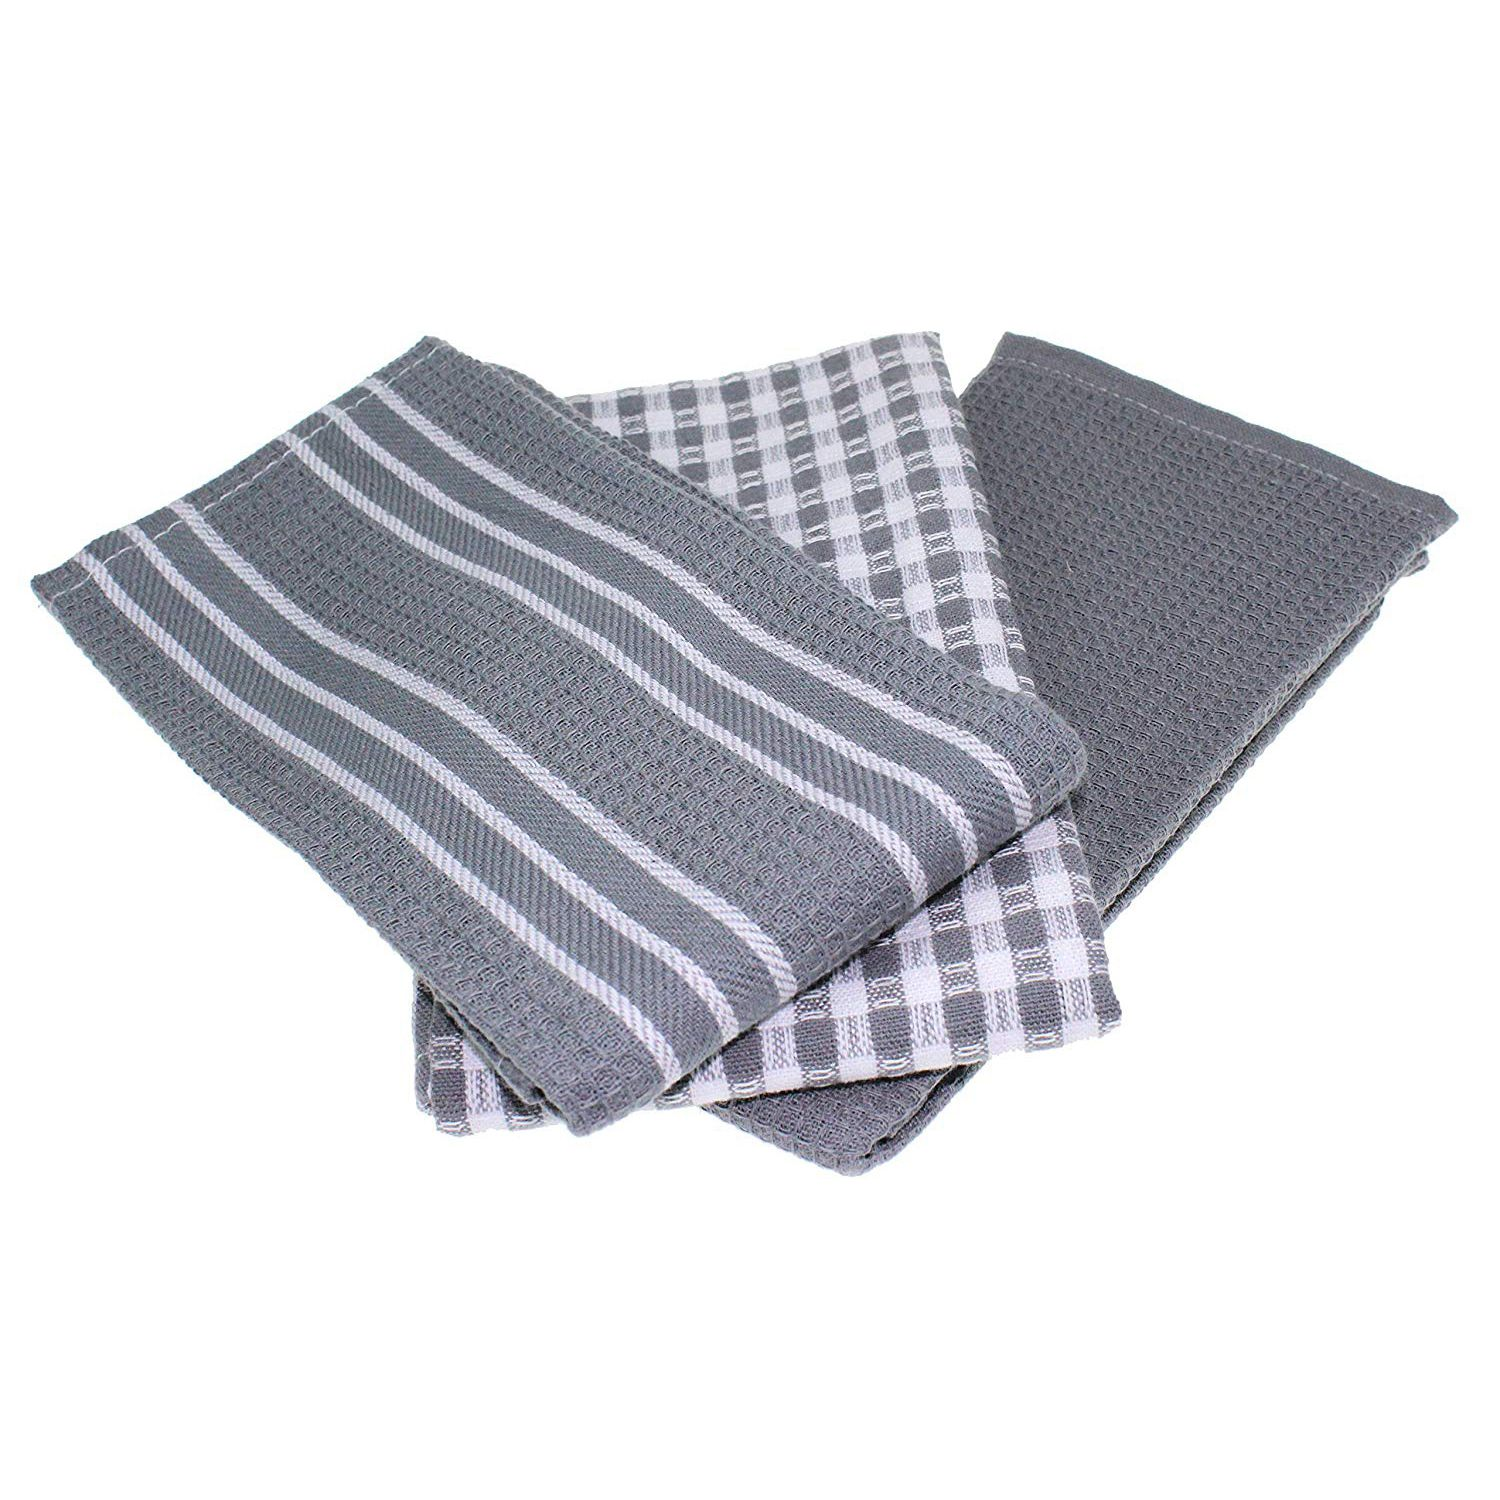 Classic Kitchen Towels cotton scouring pad kitchen  100% Natural Cotton  The Best Tea Towels  Dish Cloth Cleaning Cloths     - title=